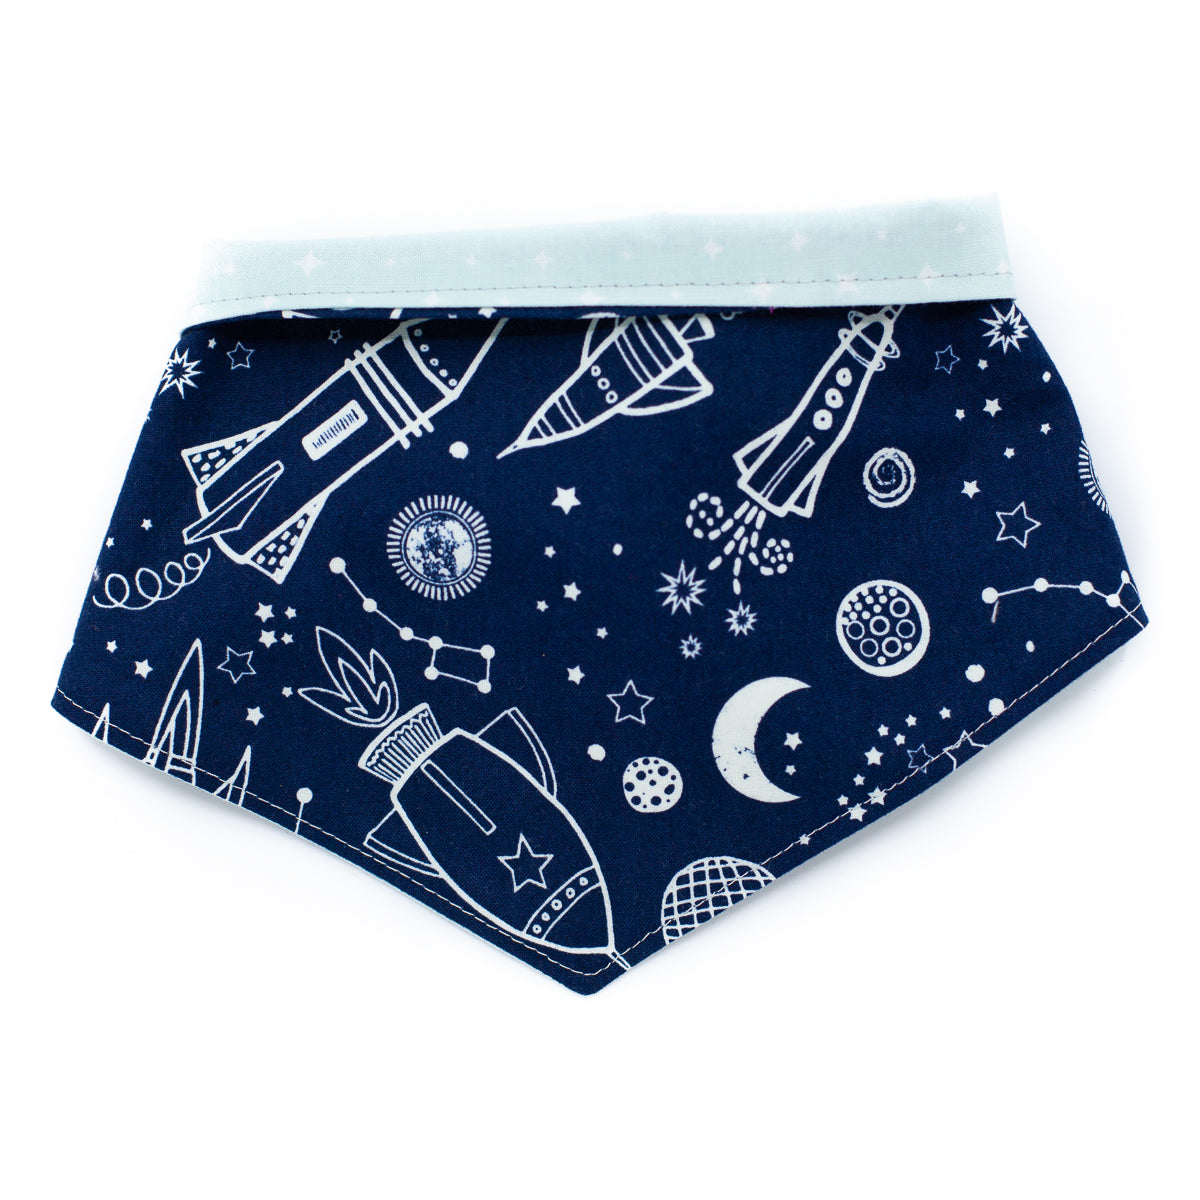 Glow in the Dark Rockets Bandana